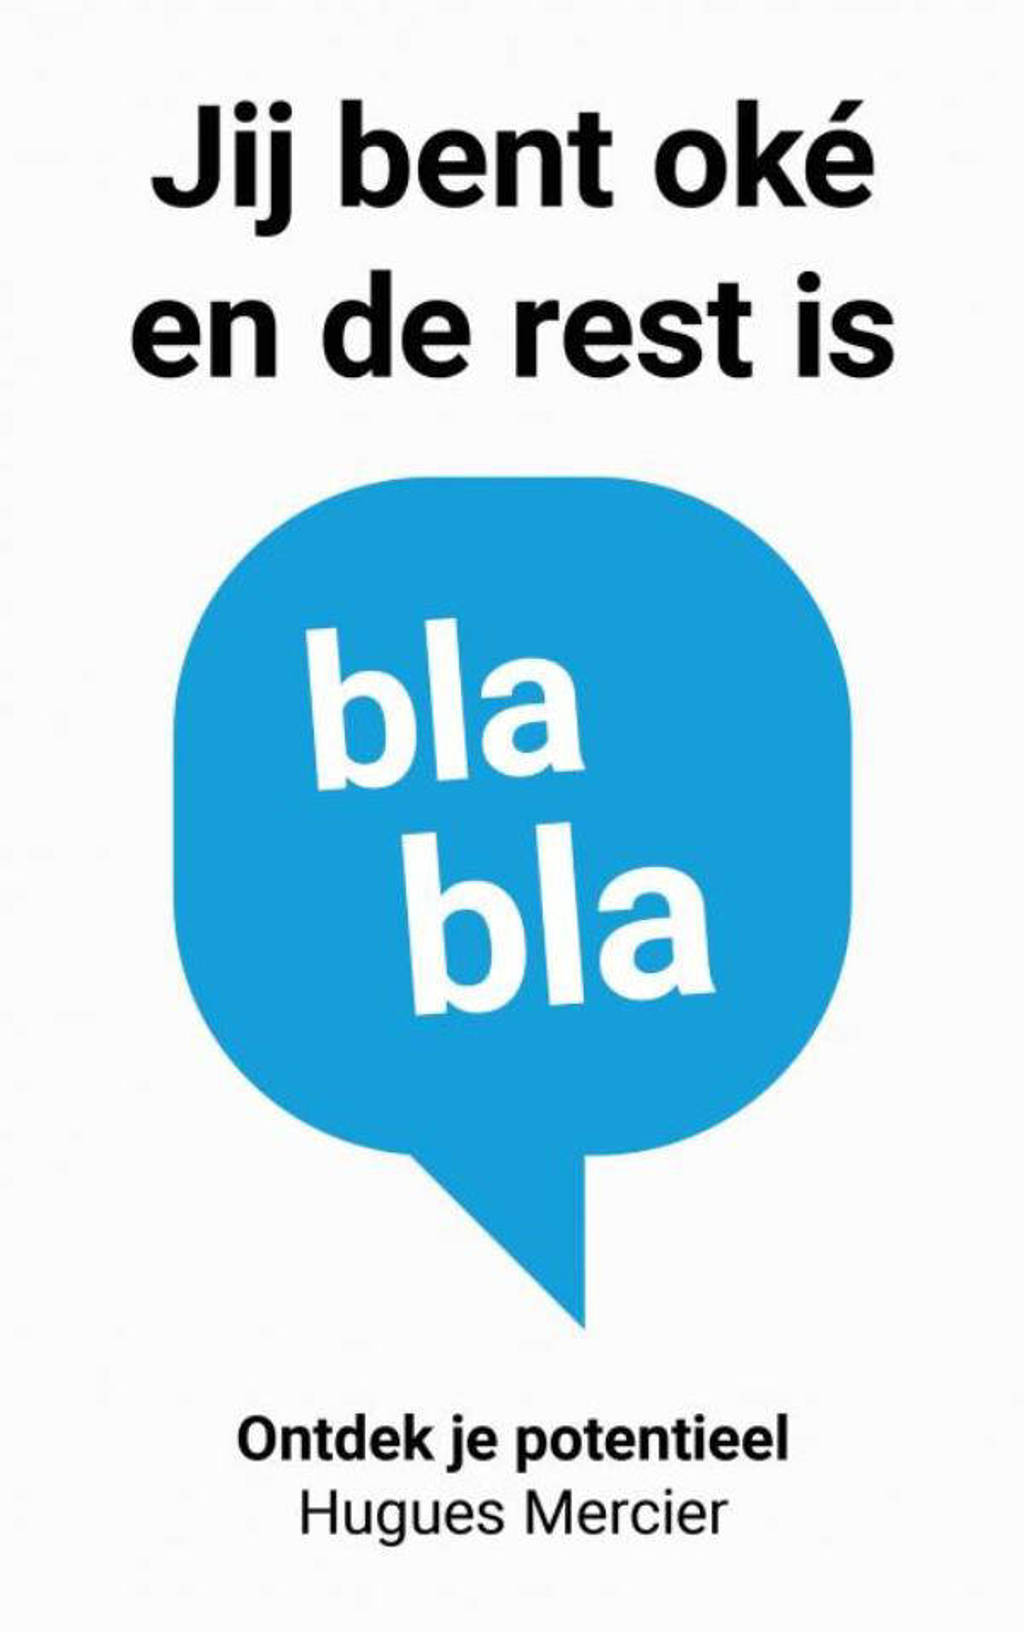 Jij bent oké en de rest is blabla - Hugues Mercier